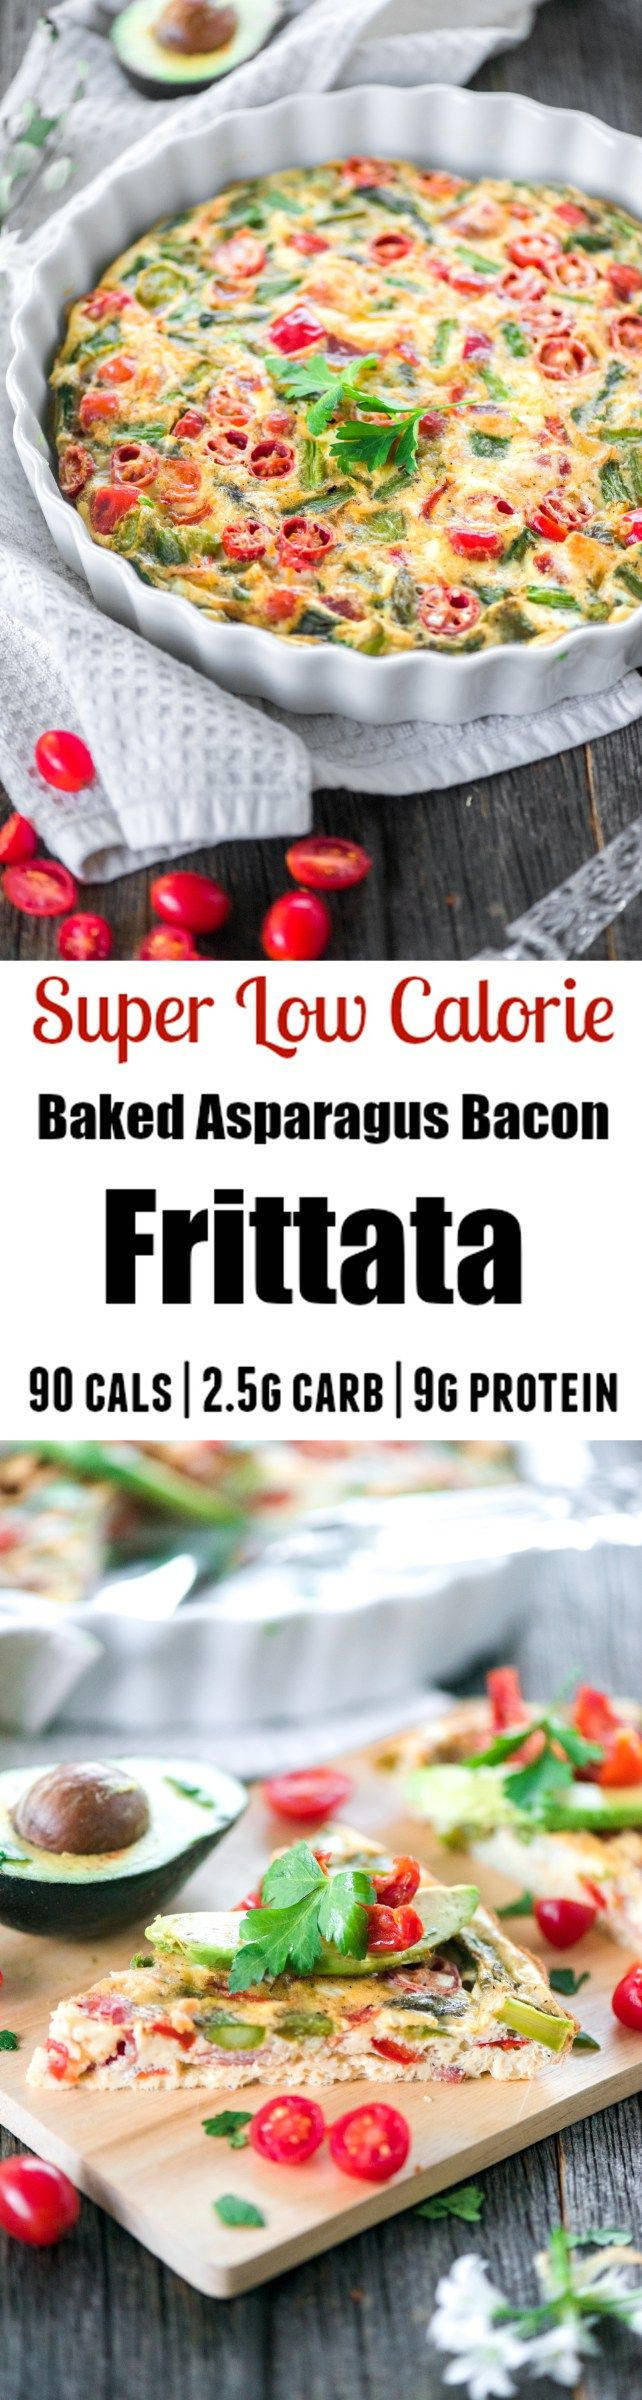 Low-Carb Baked Asparagus Bacon Frittata - Apple of My Eye